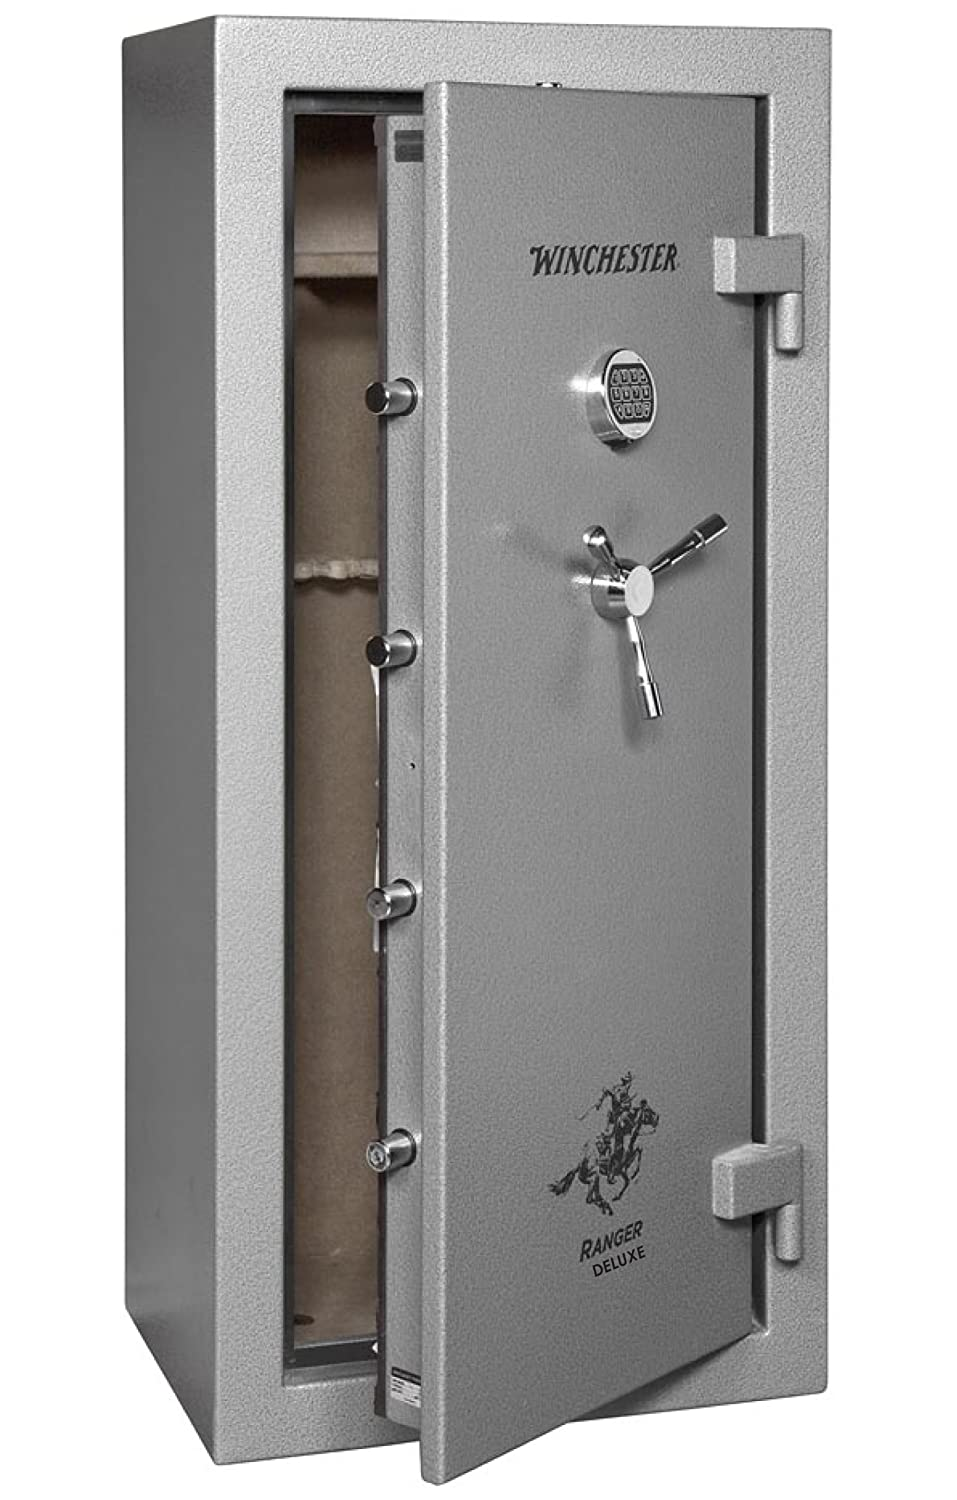 Black Gun Safe In Living Room Decor: Top 23 Best Gun Safes Reviewed For Long Guns, Pistols & More